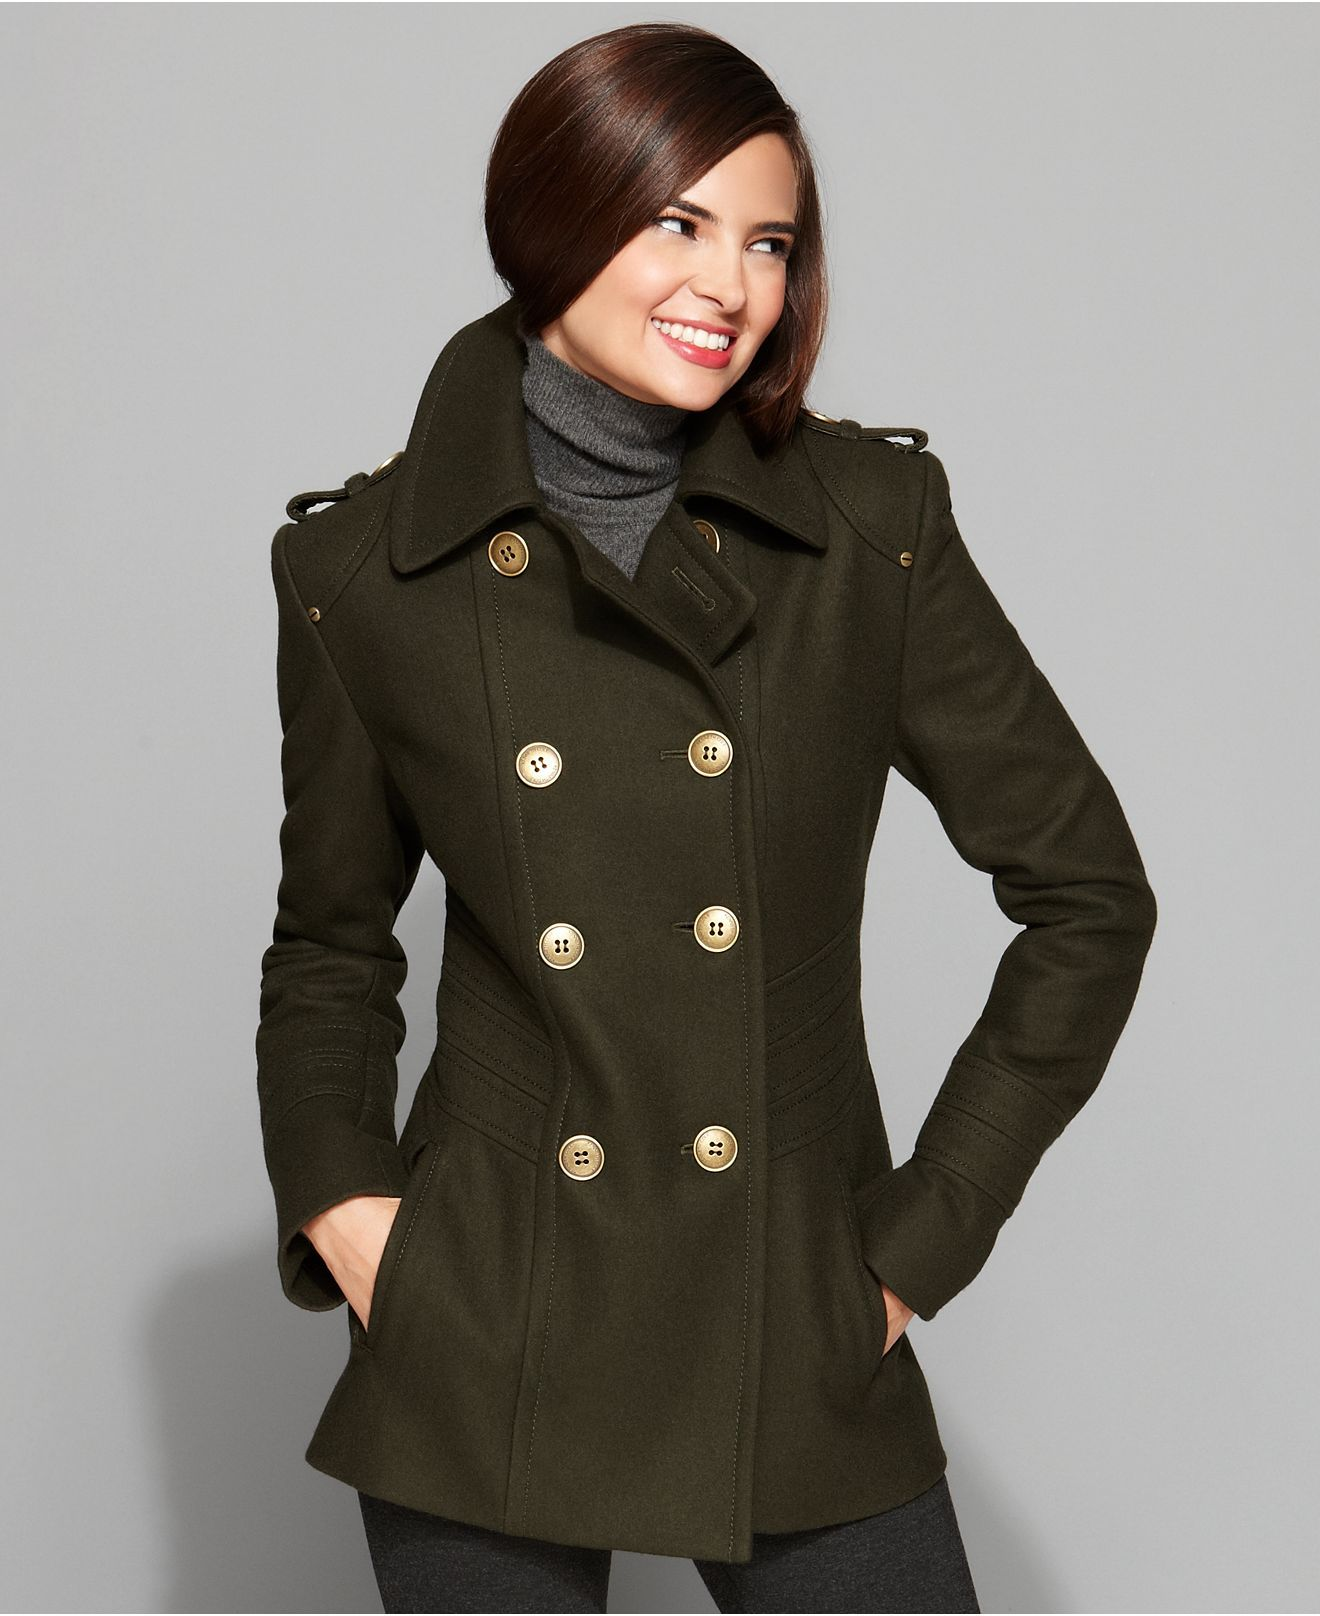 21 Outwear Looks for the Fall. Military CoatsMilitary StyleThe  MilitaryWomen's ... - 21 Outwear Looks For The Fall For Women, Double Breasted And Search